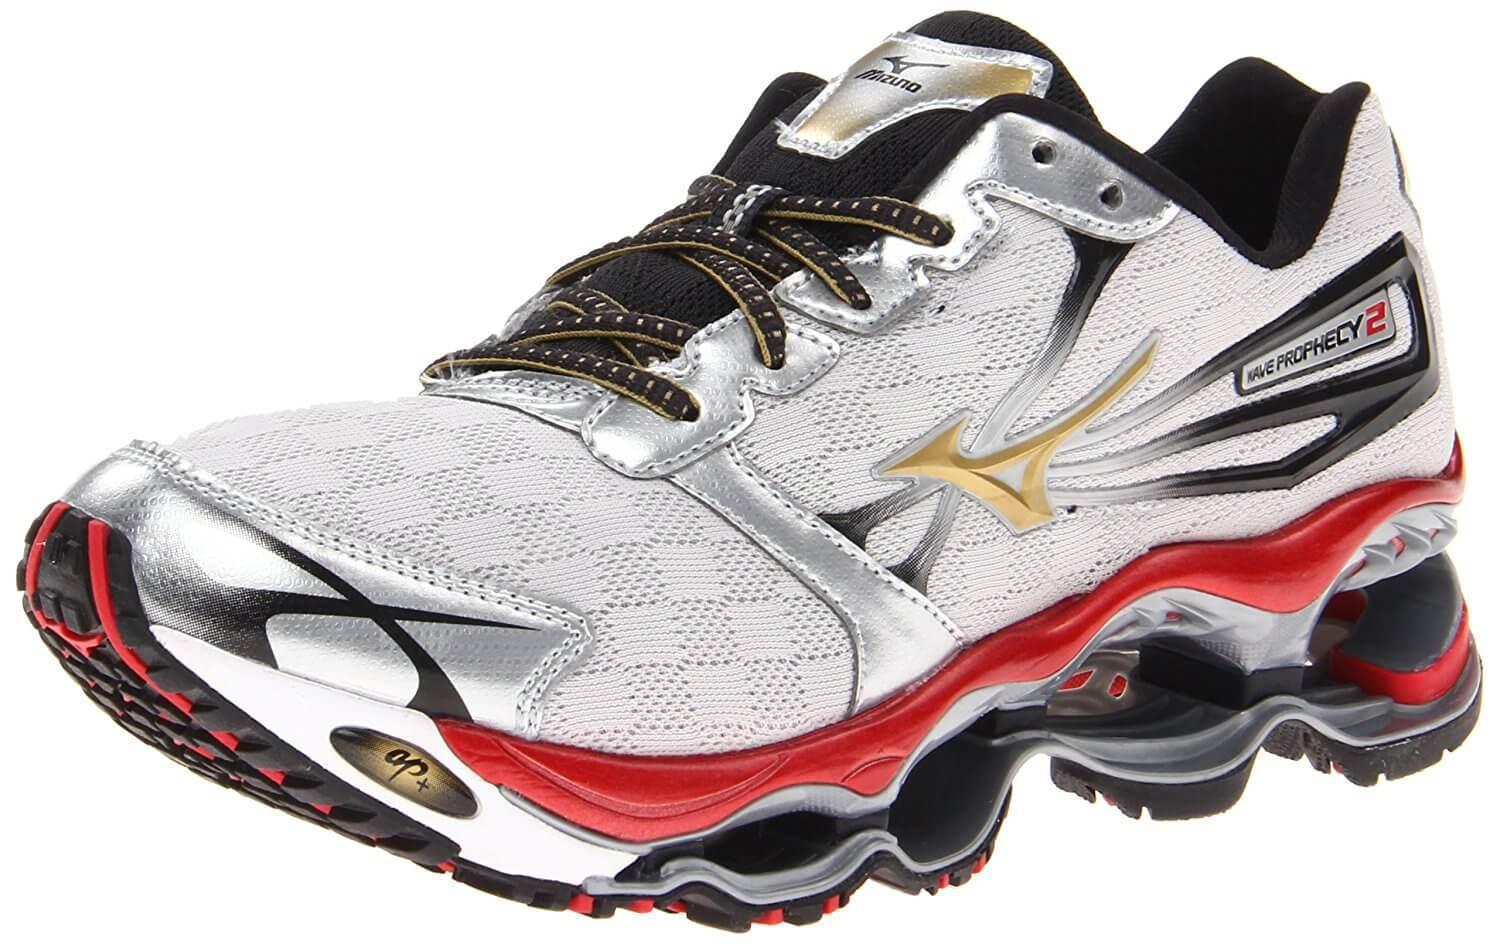 100% authentic 20679 7adce ... closeout mizuno wave prophecy 2 review buy or not in nov 2018 c614d  e778c